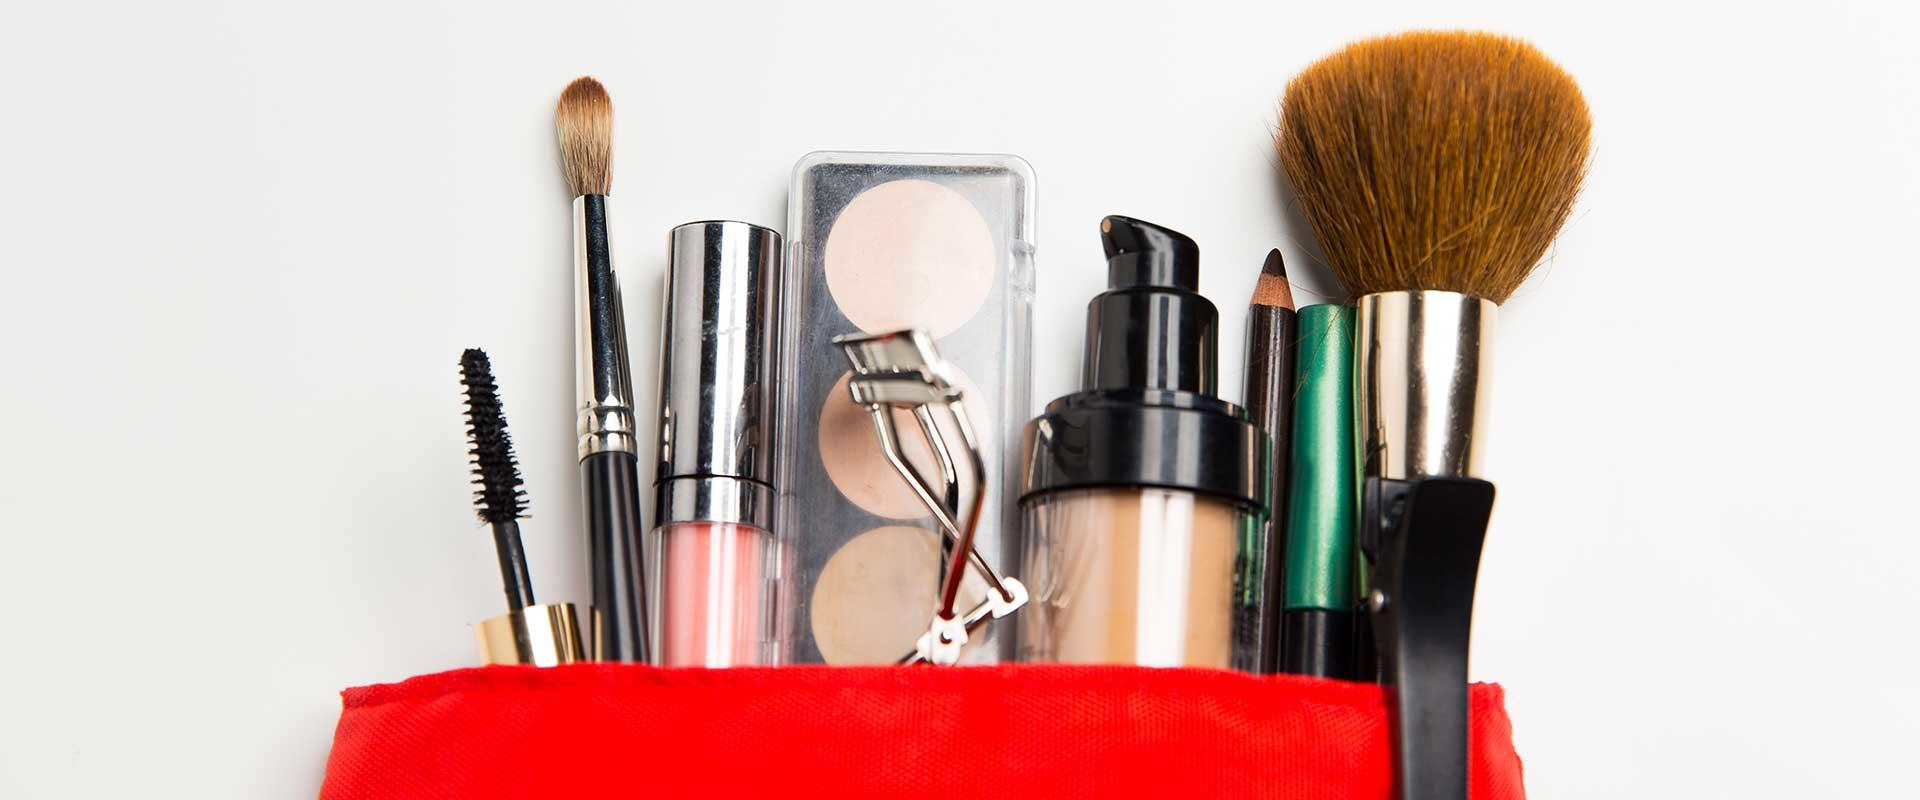 10 Essential Makeup Must-Haves